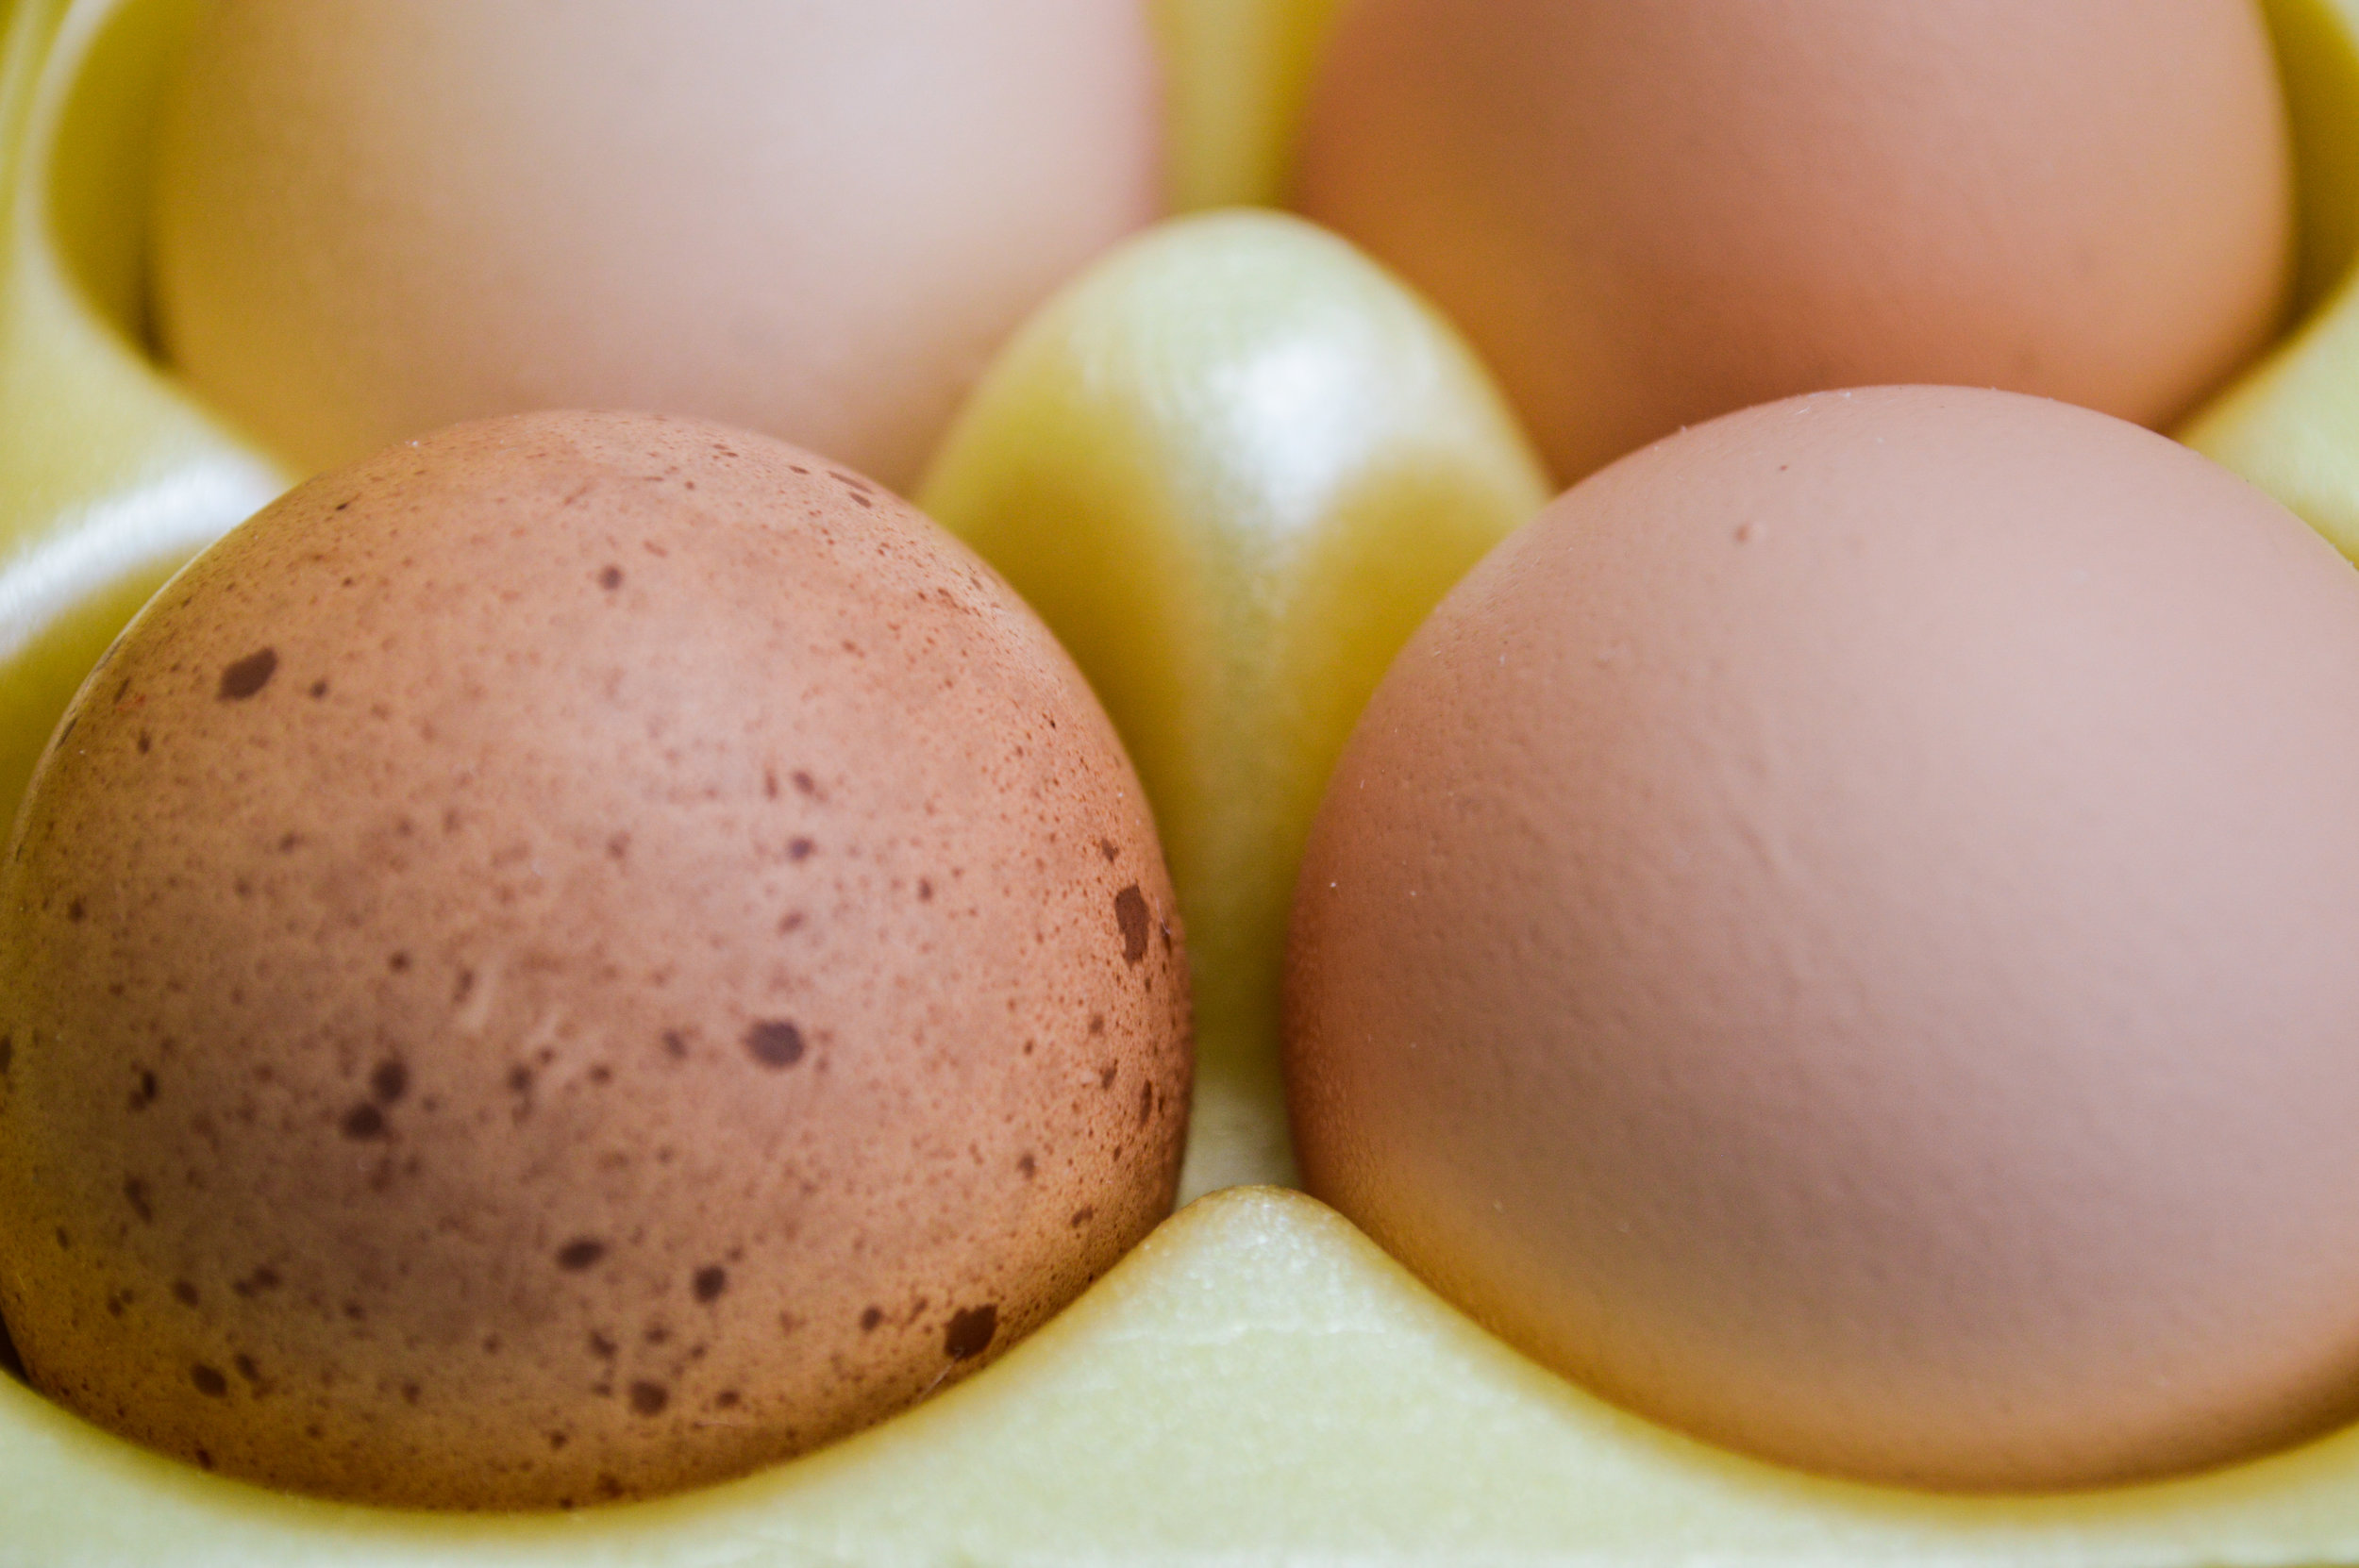 Morning Glory Farms eggs up close.jpg